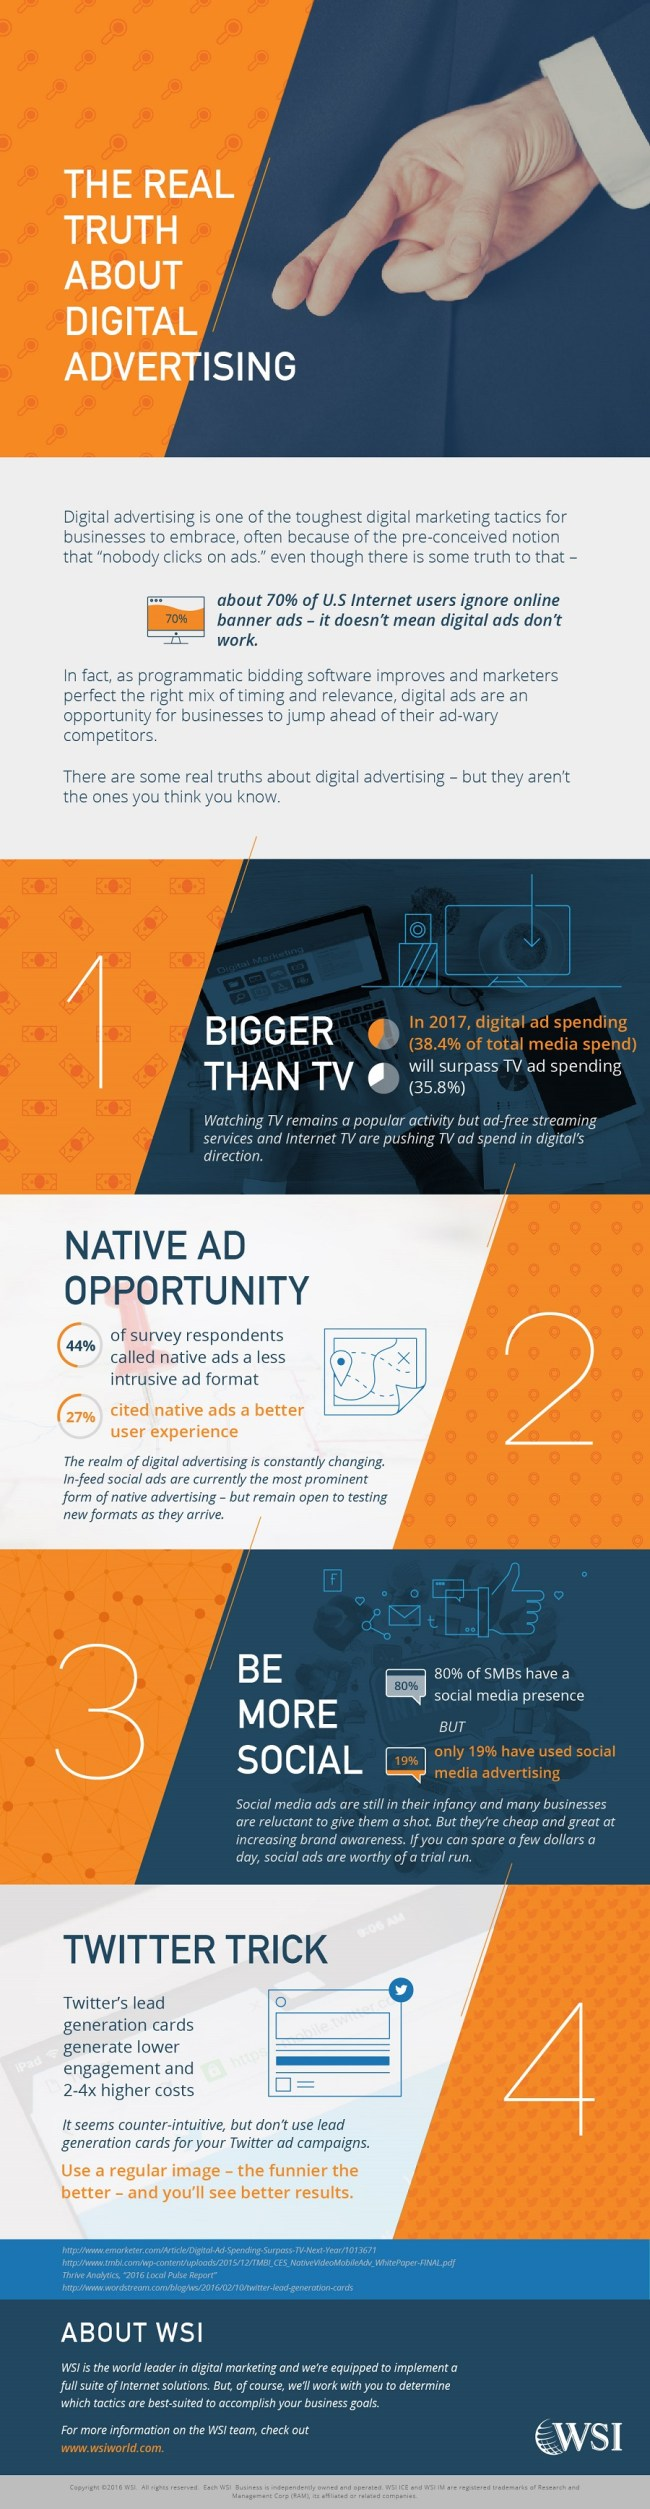 Digital Advertising Truth-isms for Your Delaware Business